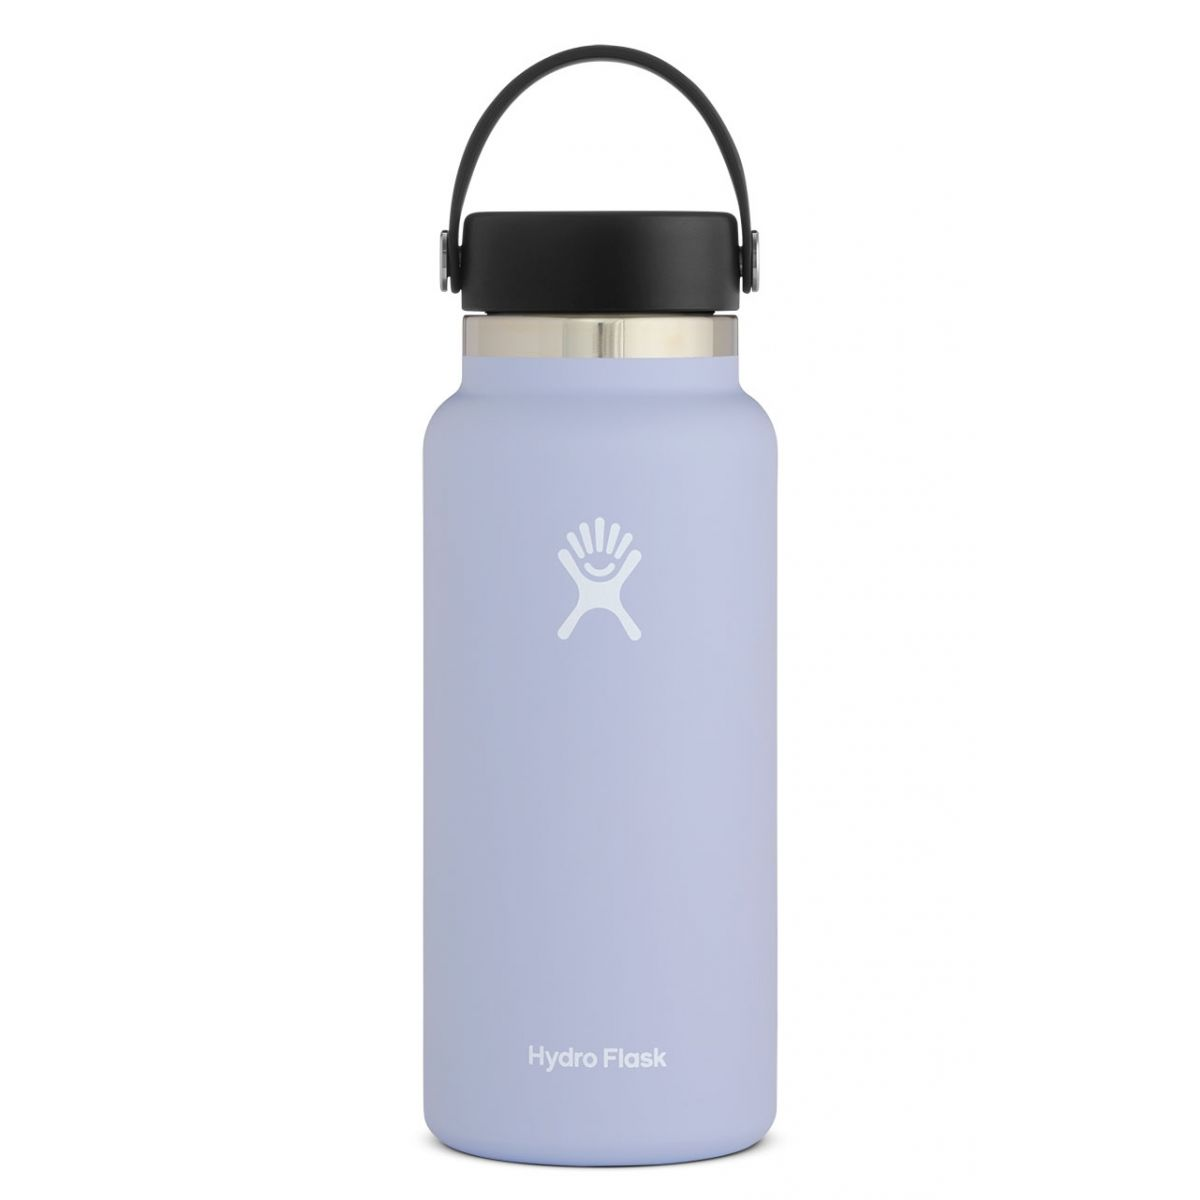 Image For Hydroflask Insulated Wide Mouth Water Bottle, Fog